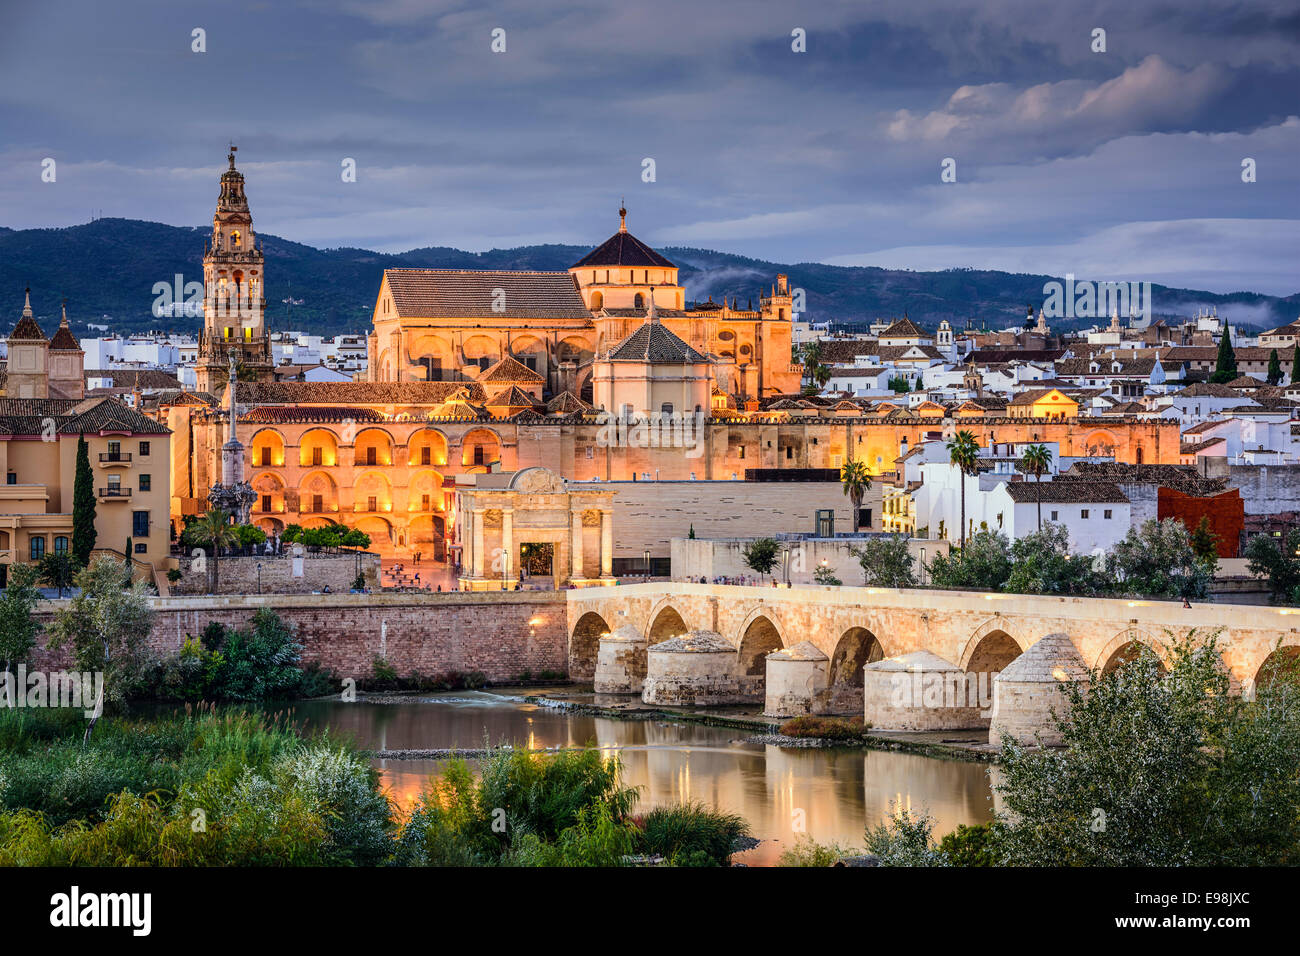 Cordoba, Spain at the Roman Bridge and Town Skyline on the Guadalquivir River. - Stock Image